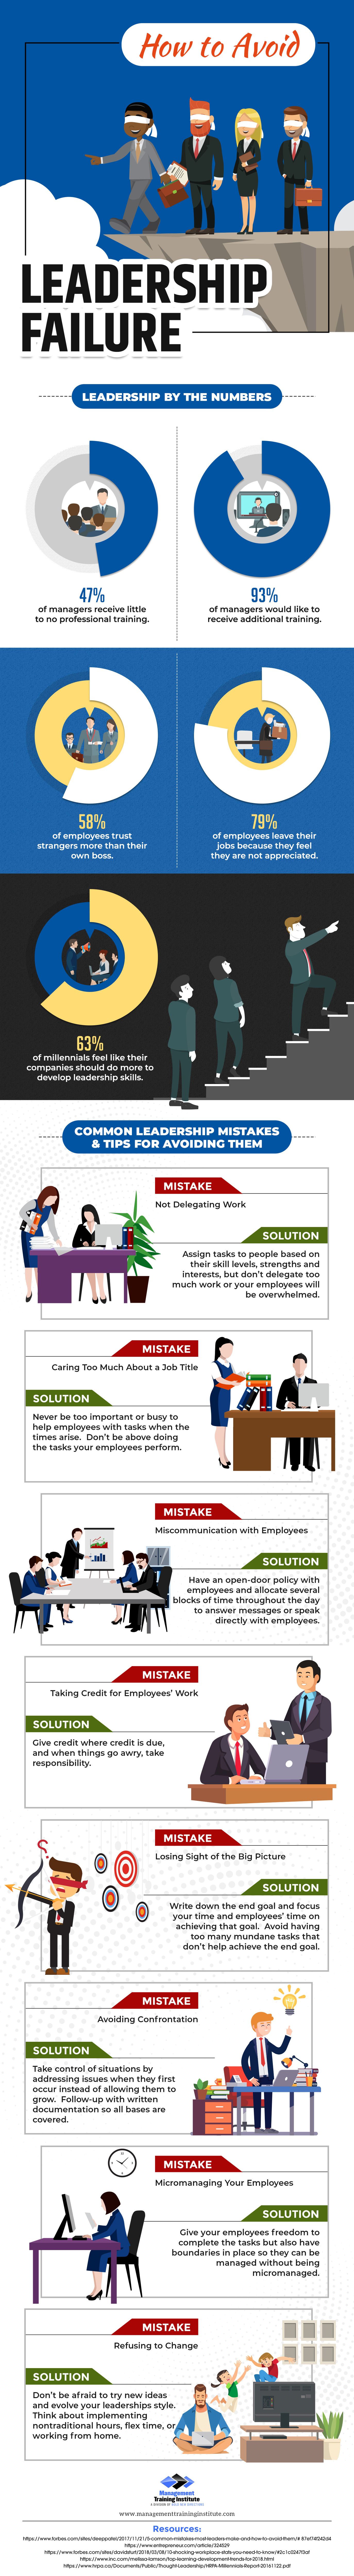 How to Avoid Leadership Failure